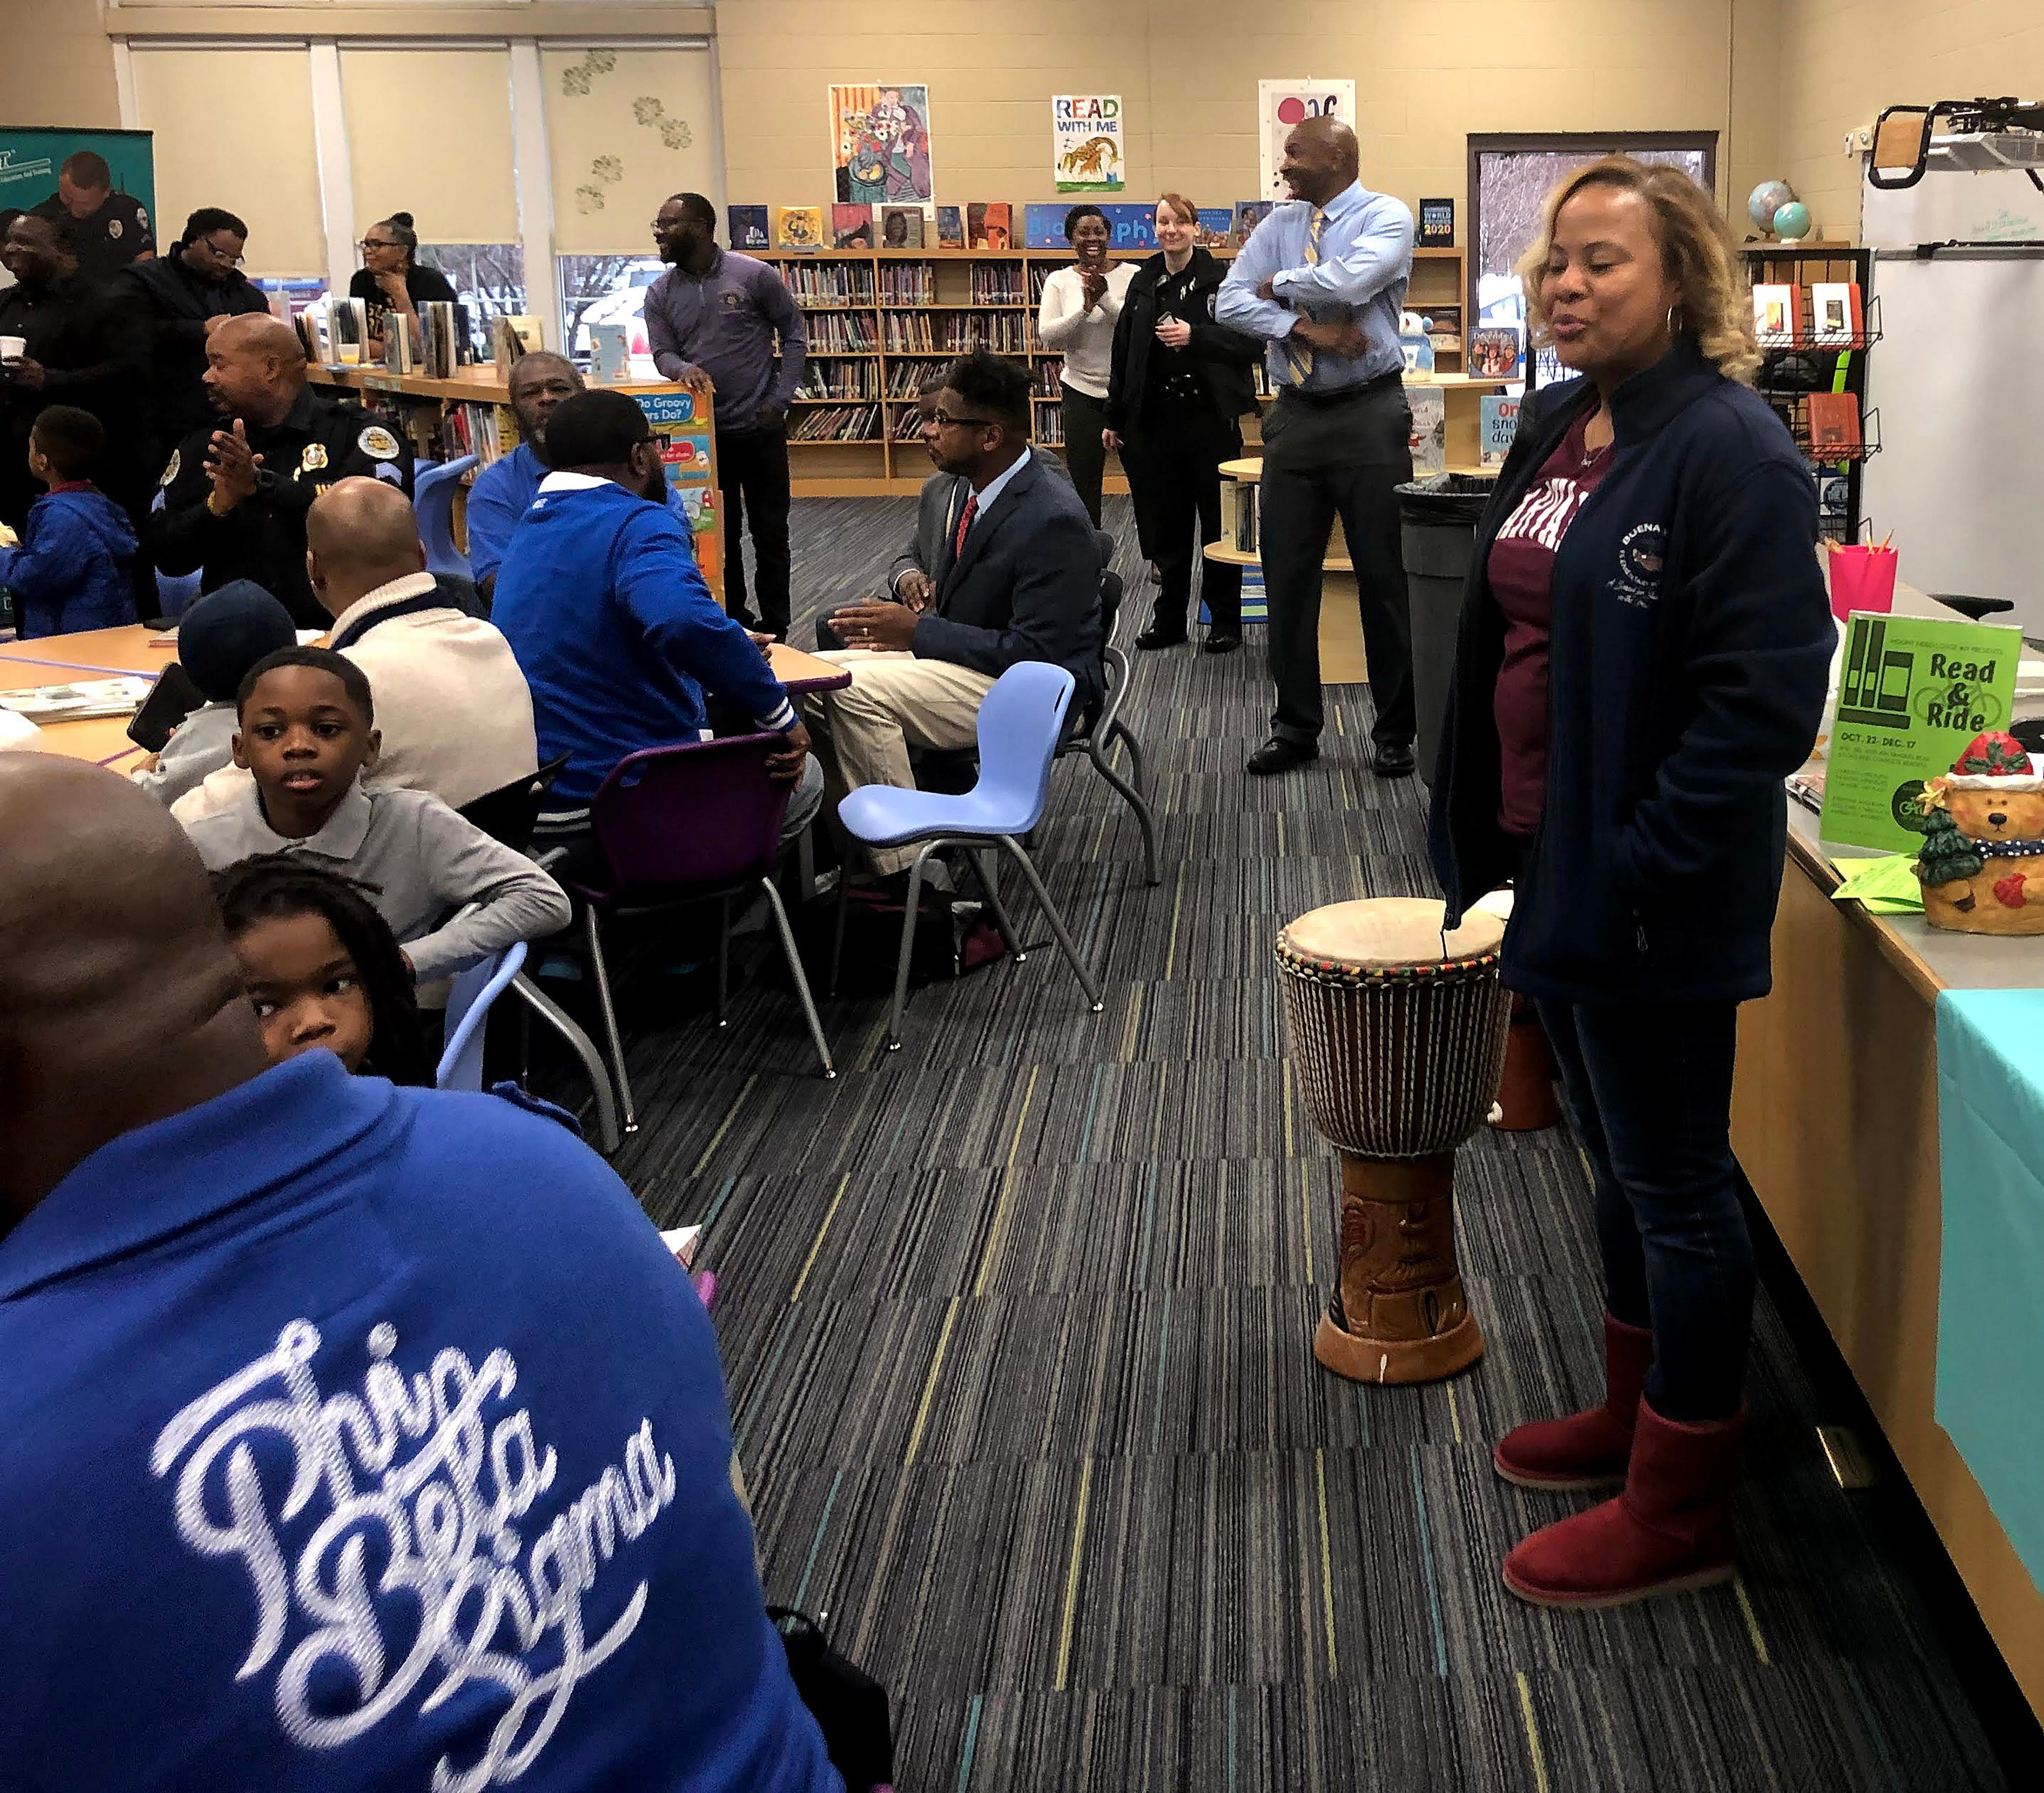 """Myra Taylor, Buena Vista Elementary School principal, says Fatherhood Fridays gives students """"a lot of one-on-one time with someone who looks like them and they can model that behavior."""""""